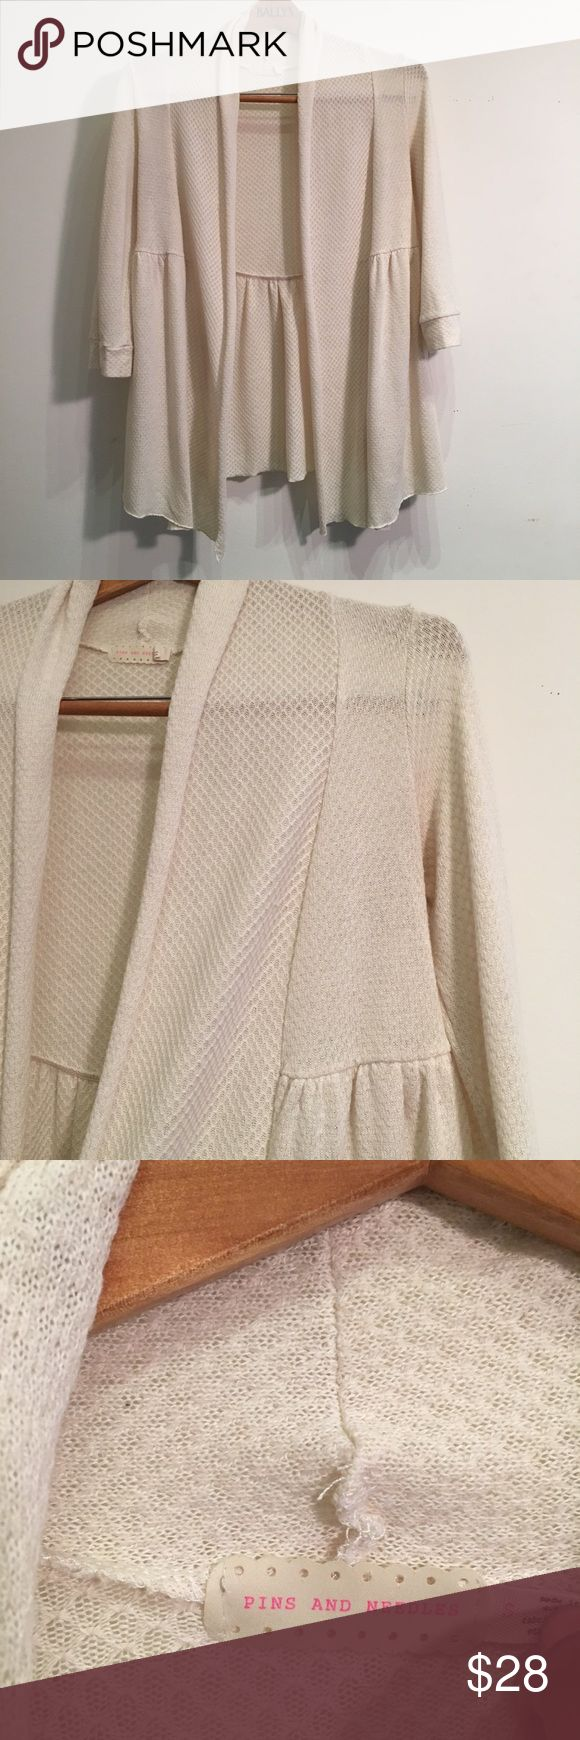 Pins and Needles Cardigan Urban Outfitters Pin n Needles cream cardigan in a size small EUC Pins and Needles Sweaters Cardigans